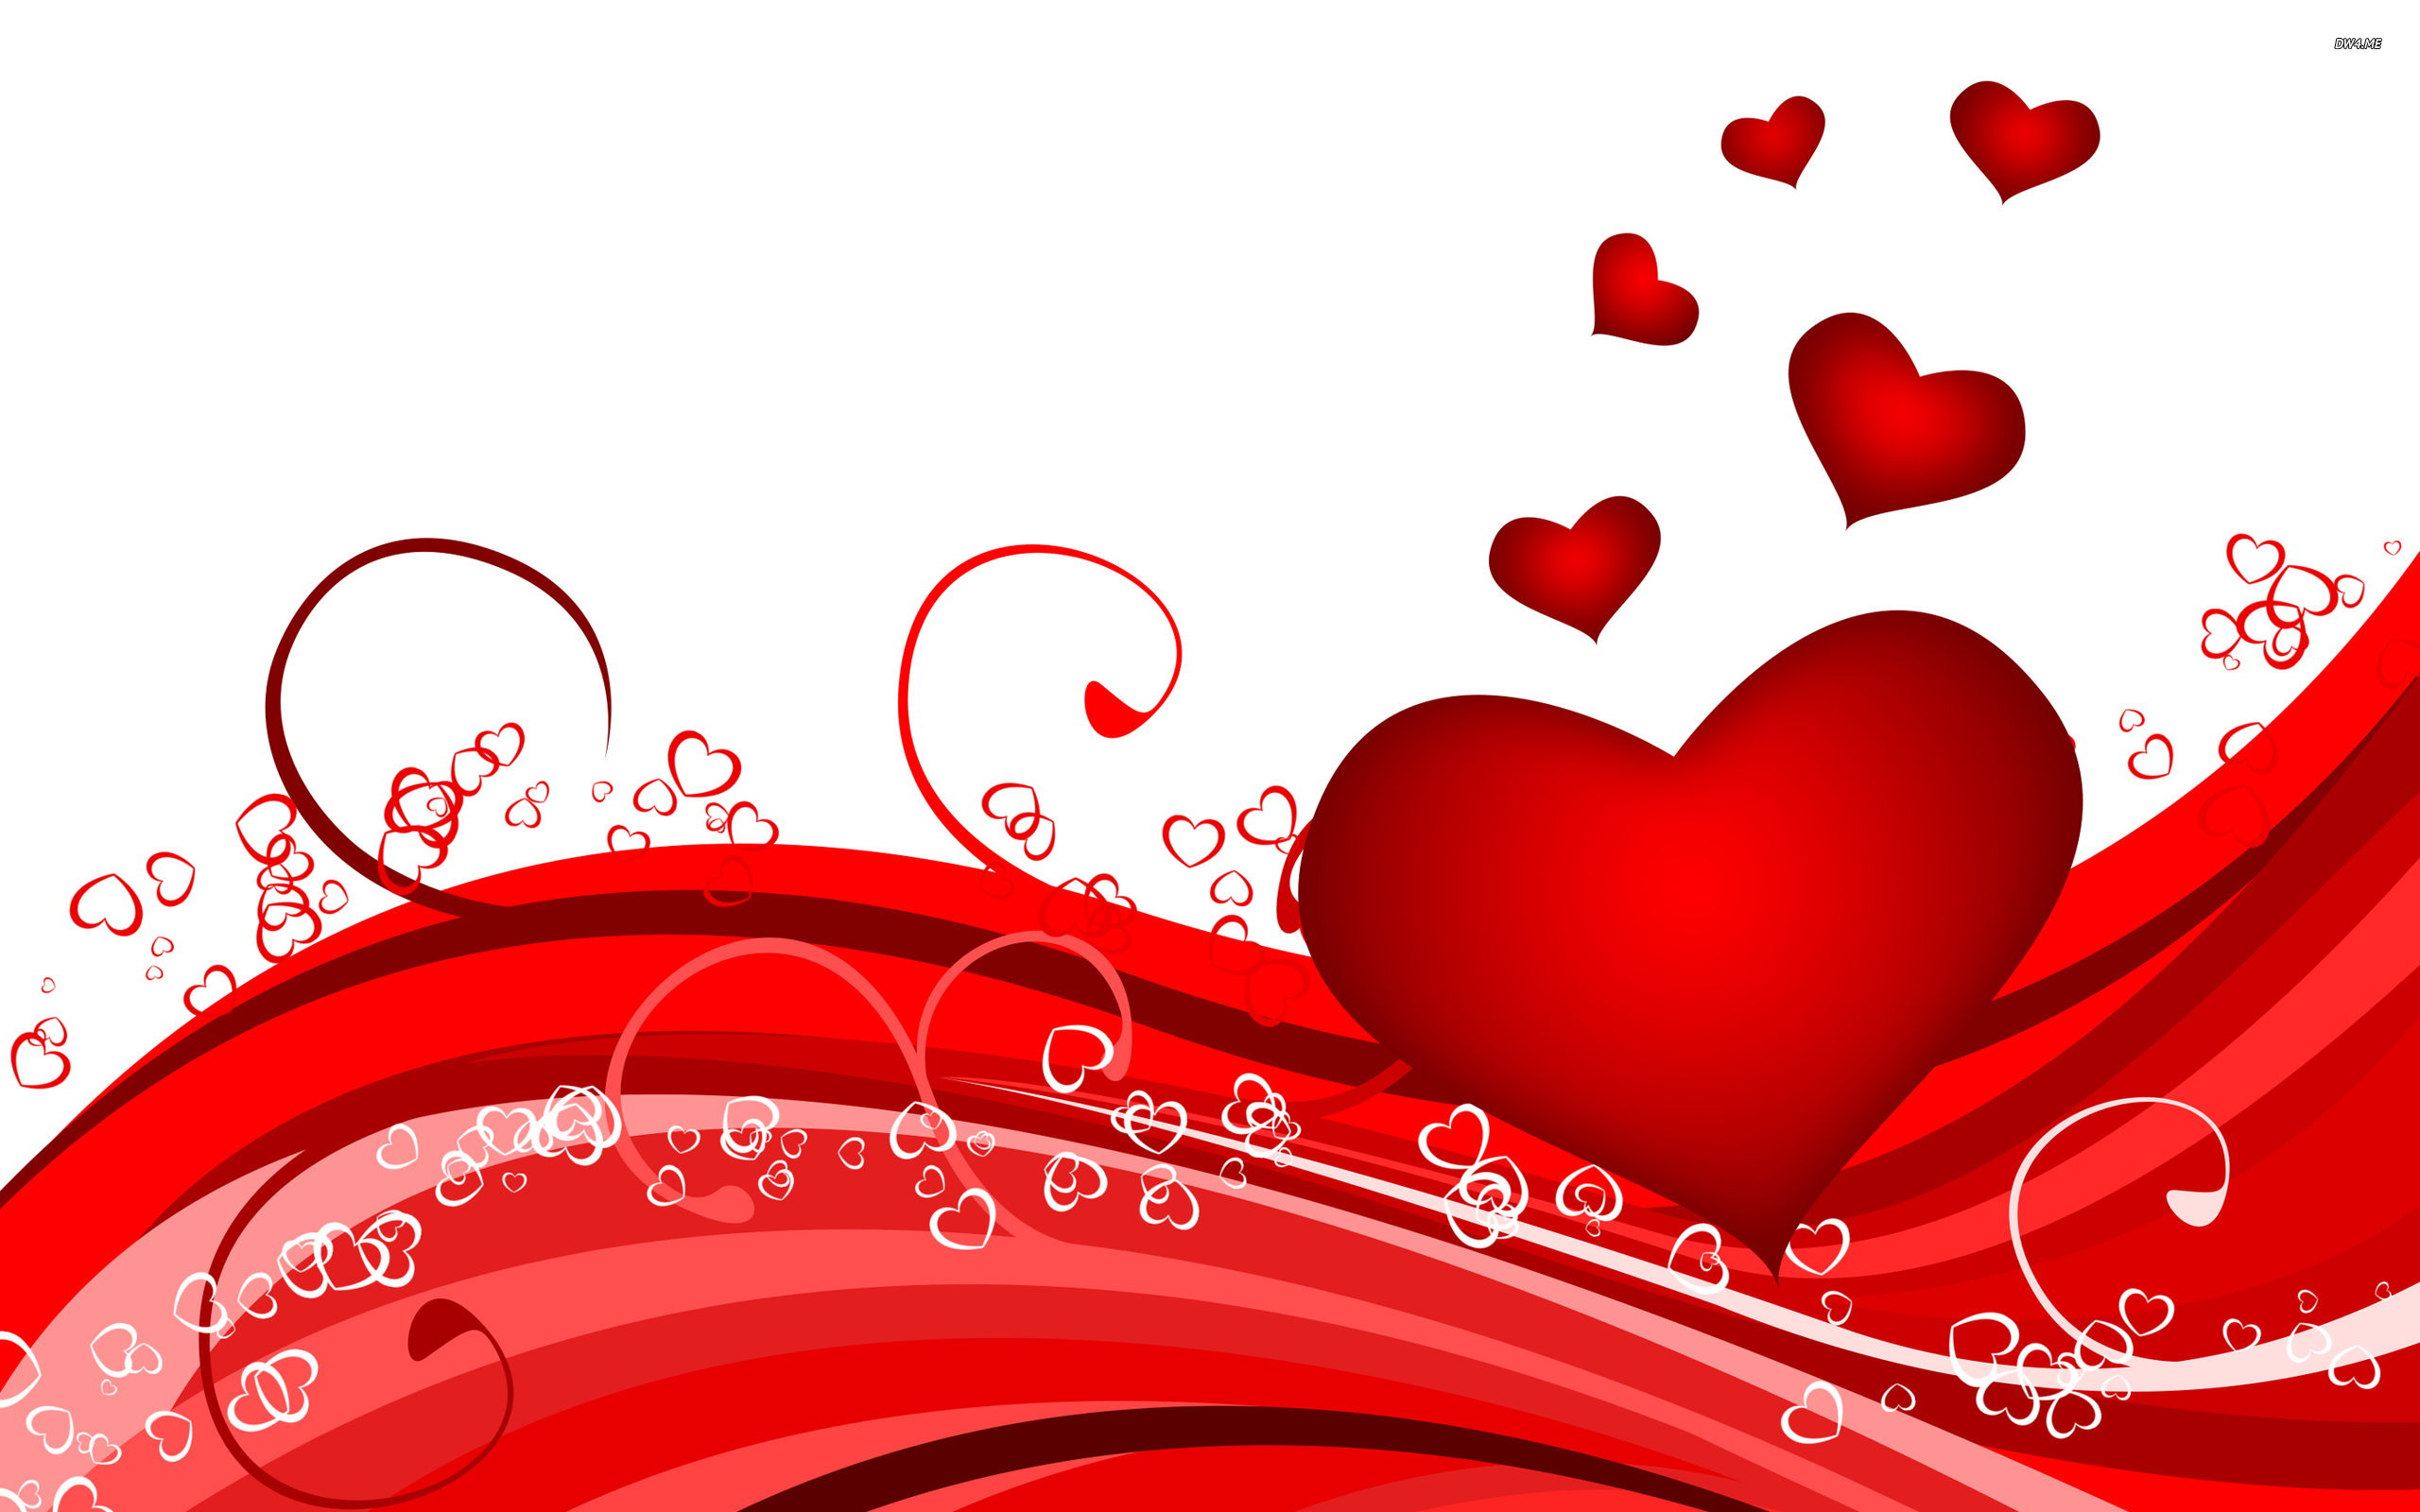 Valentines Day Wallpapers High Quality | Download Free